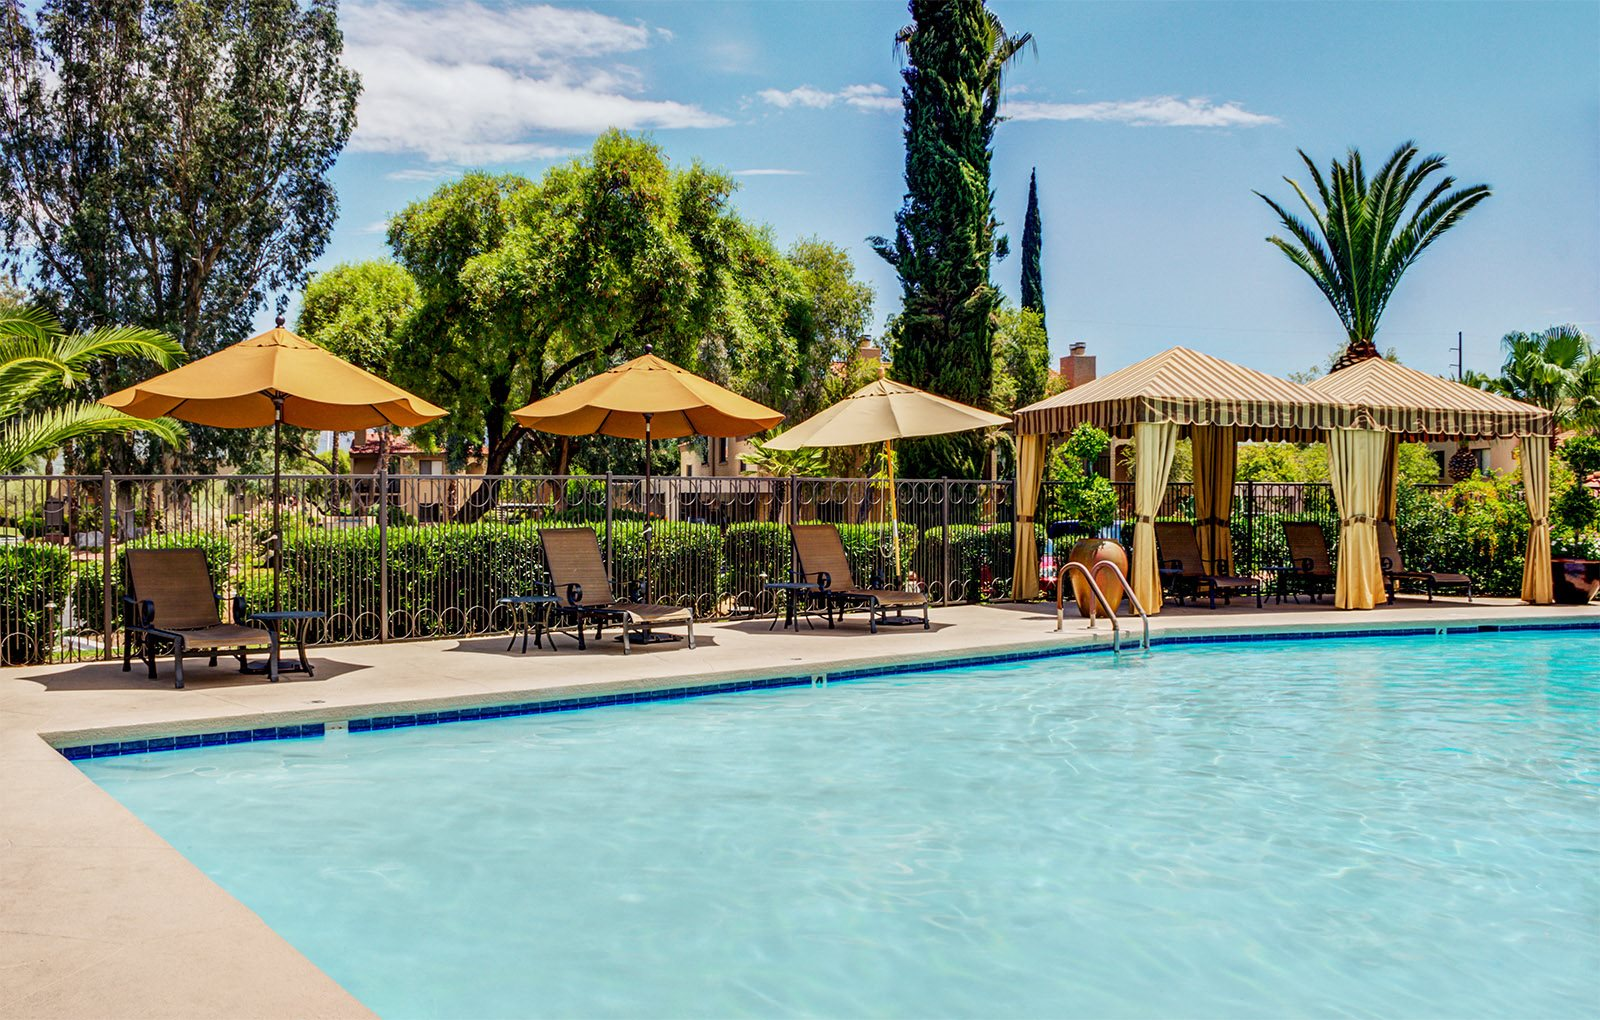 Image of the sparkling pool at Sonoran Terraces Apartment Homes